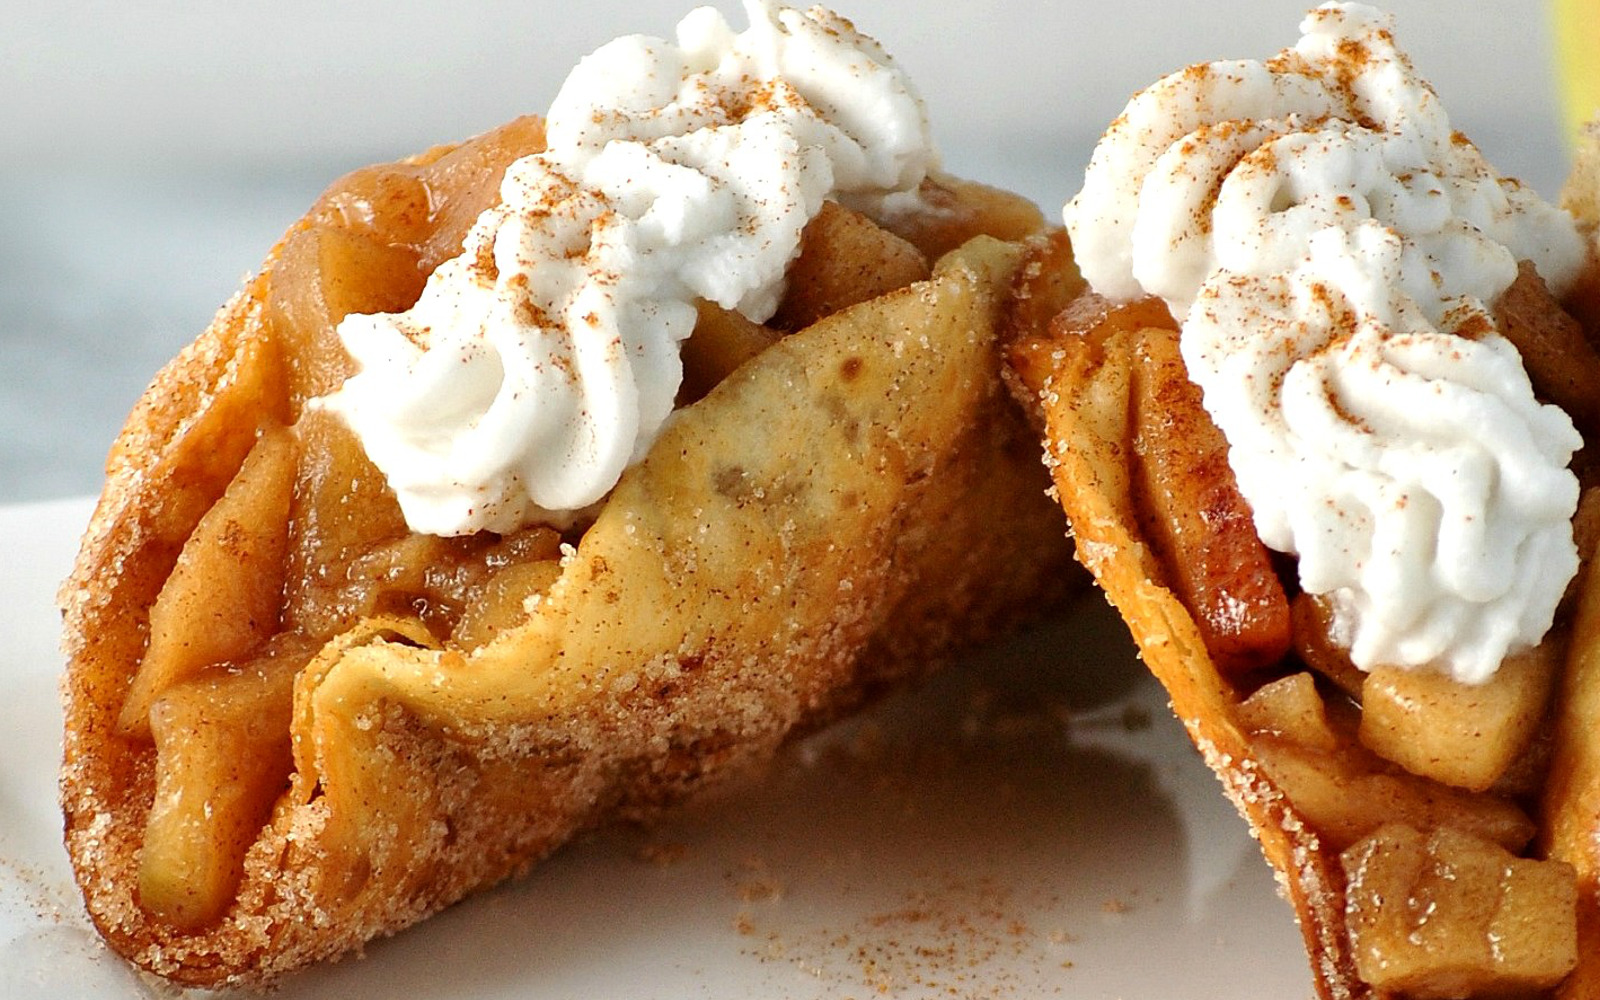 Cinnamon Apple Dessert Tacos